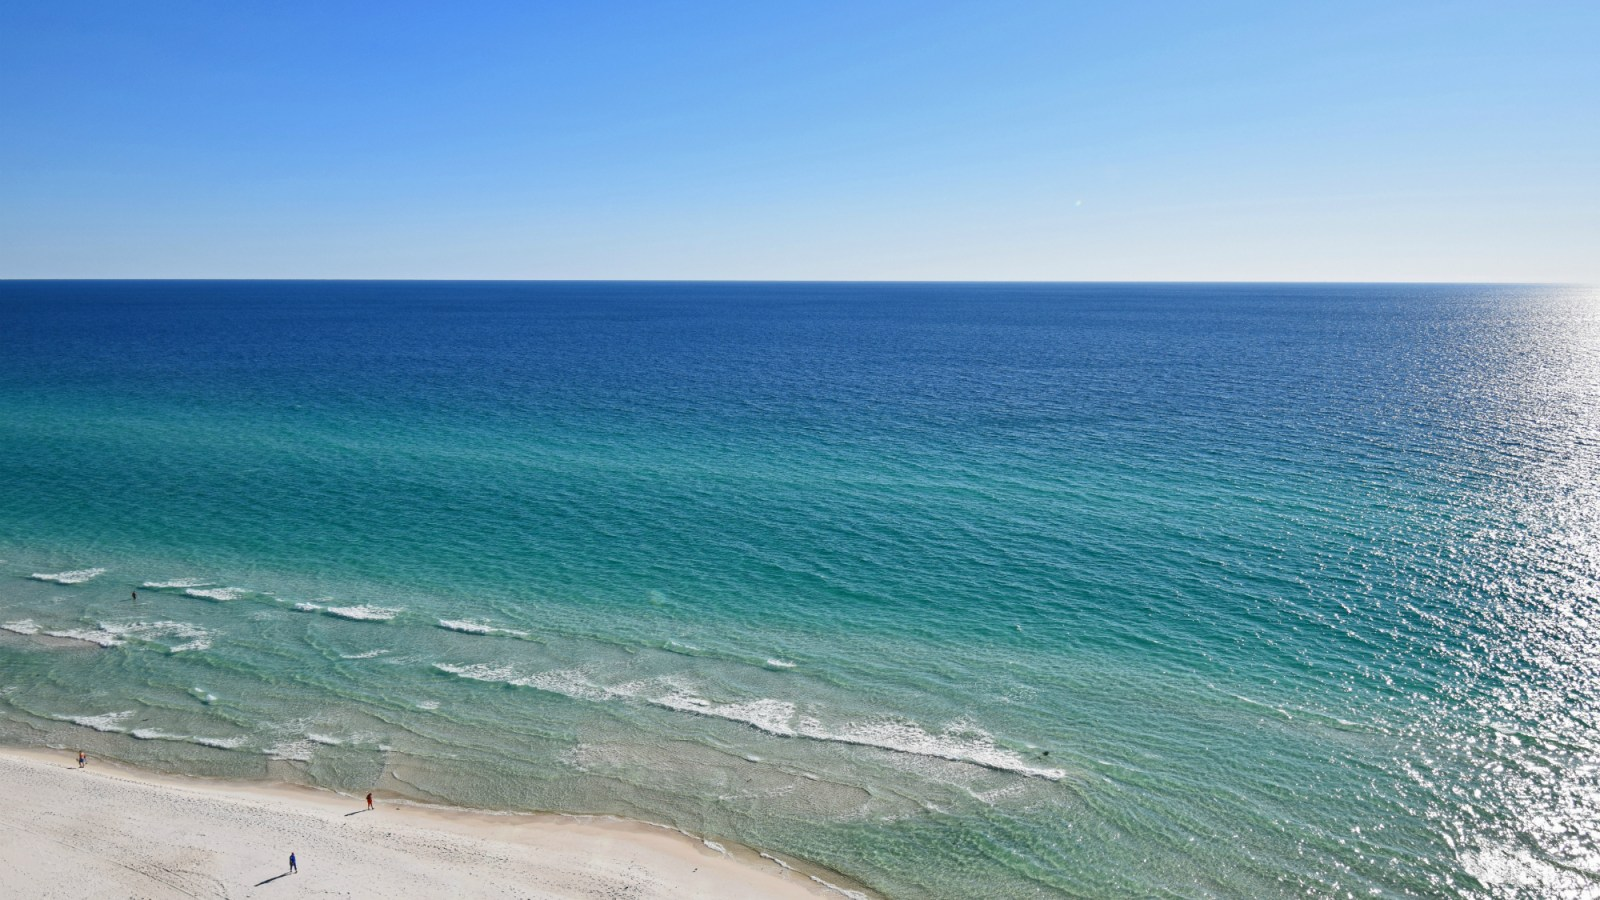 Why visit Panama City Beach, Florida | Reasons to visit Panama City Beach on Florida's Panhandle #panamacity #panamacitybeach #florida